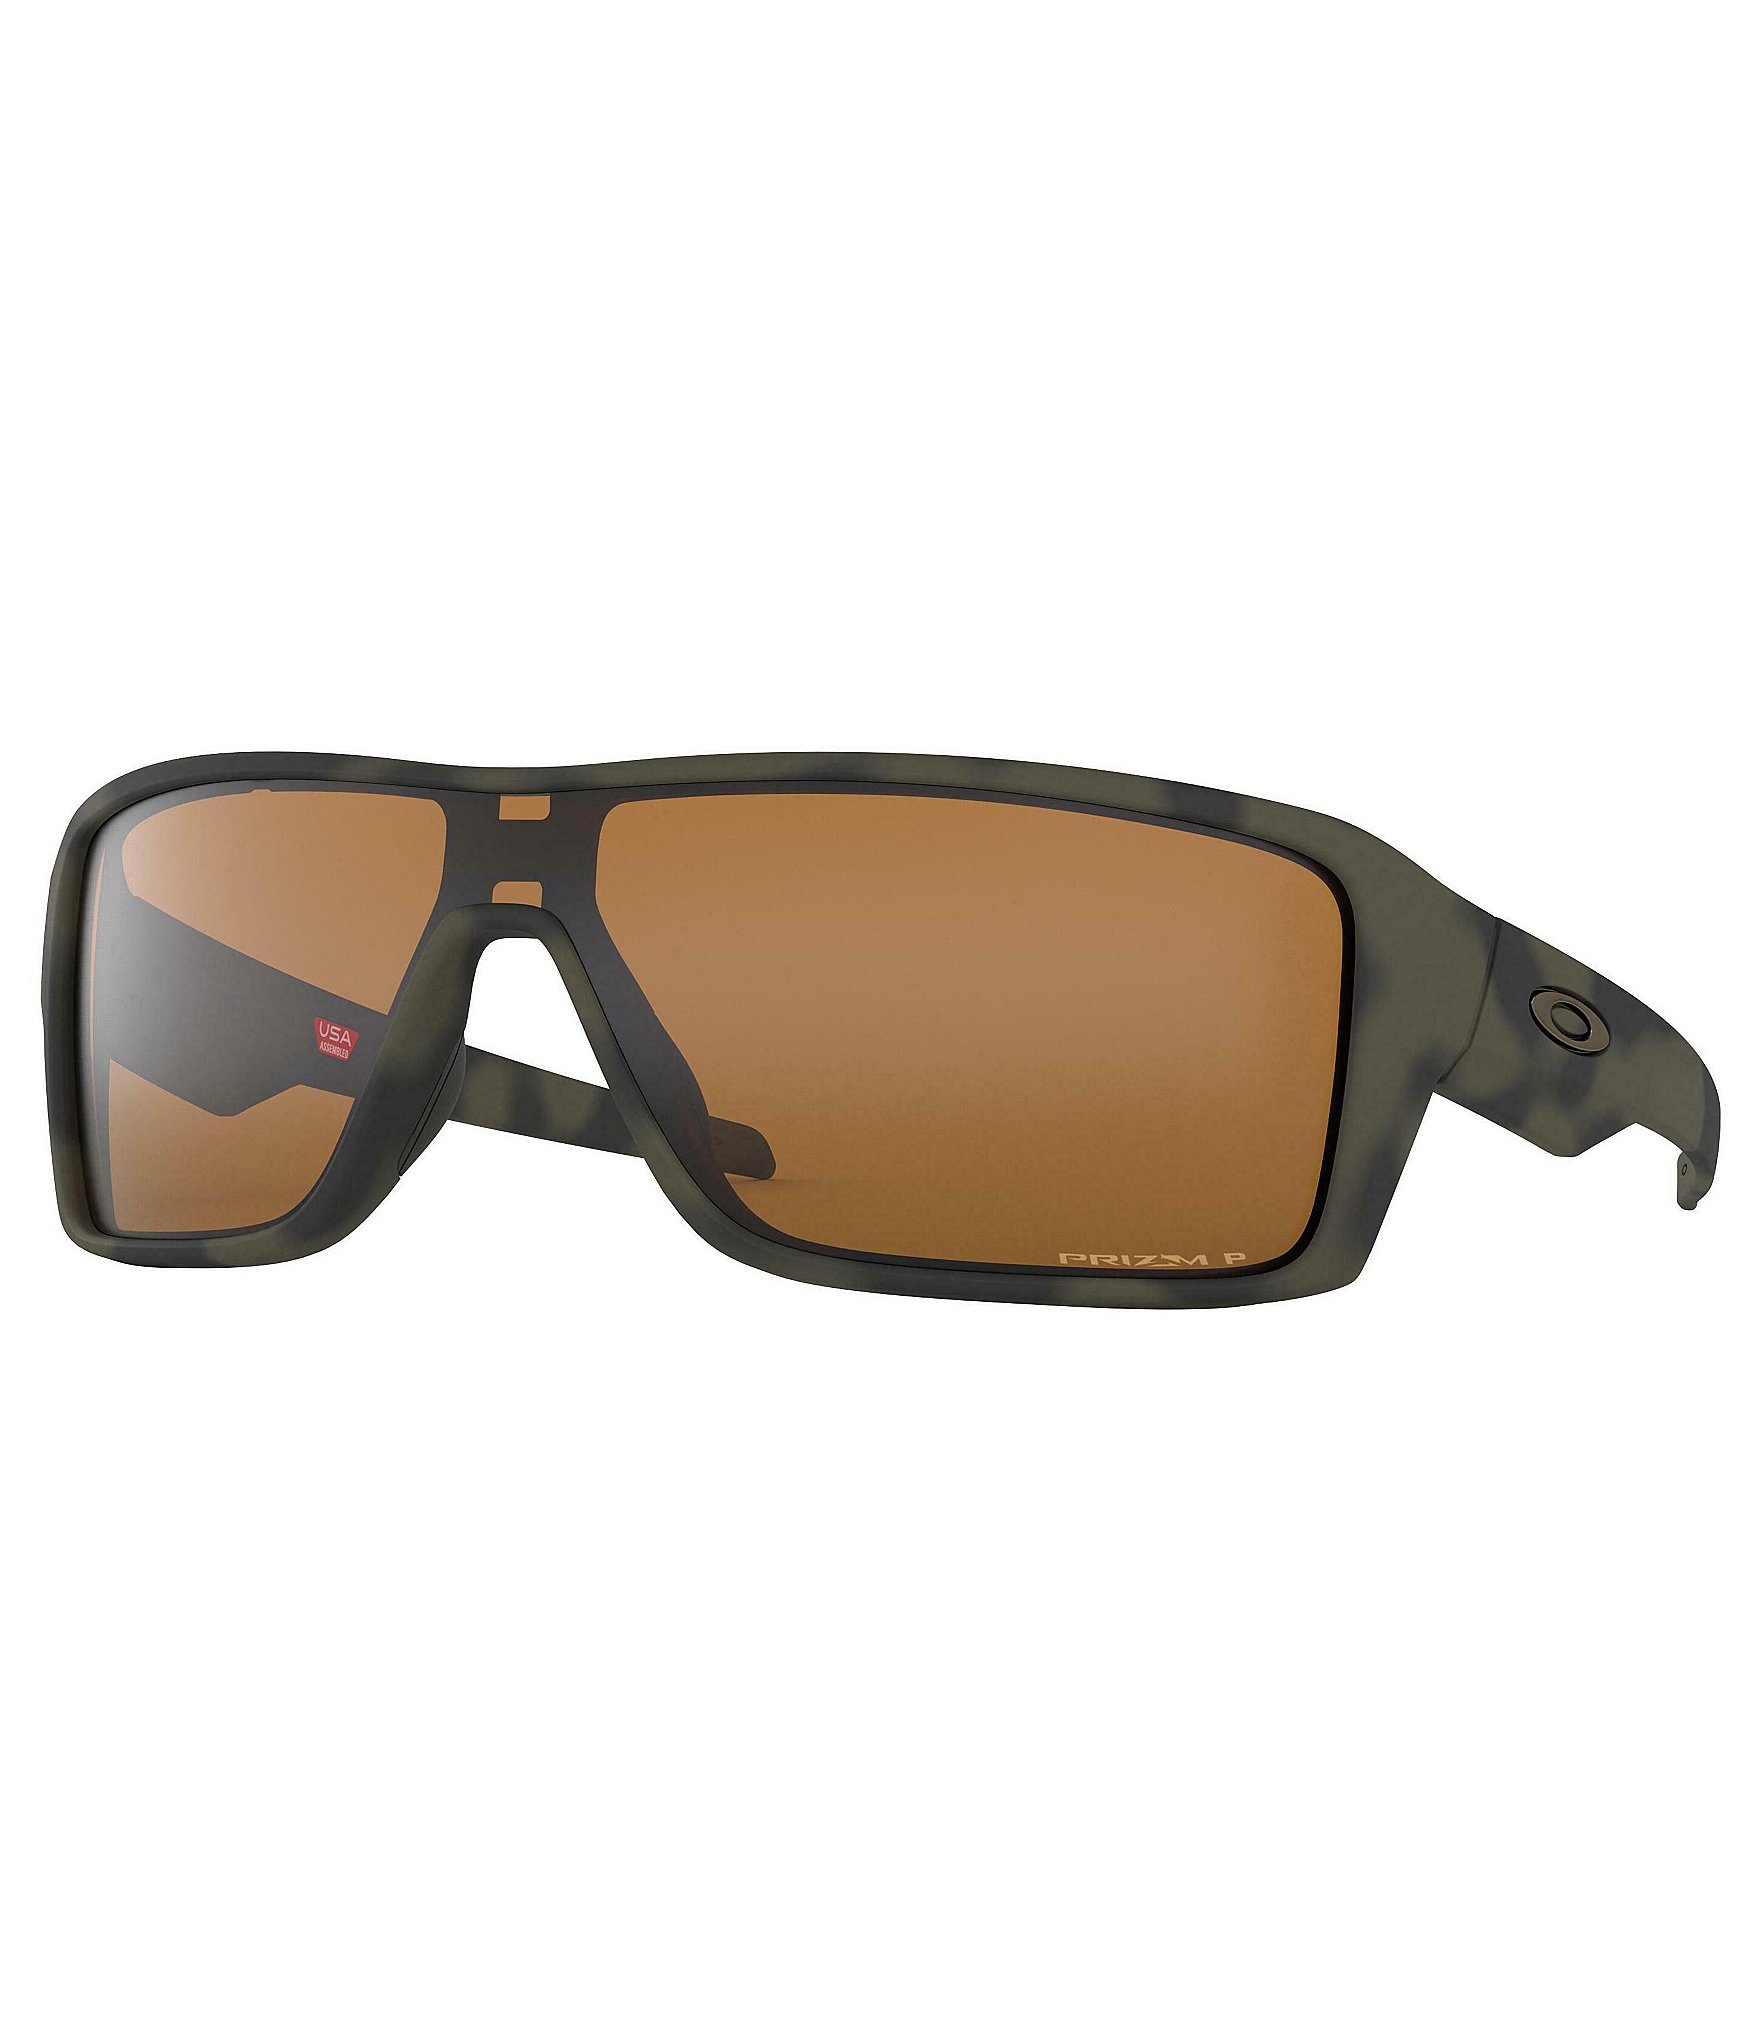 da20e013ad0 Oakley Men s Sunglasses   Eyewear